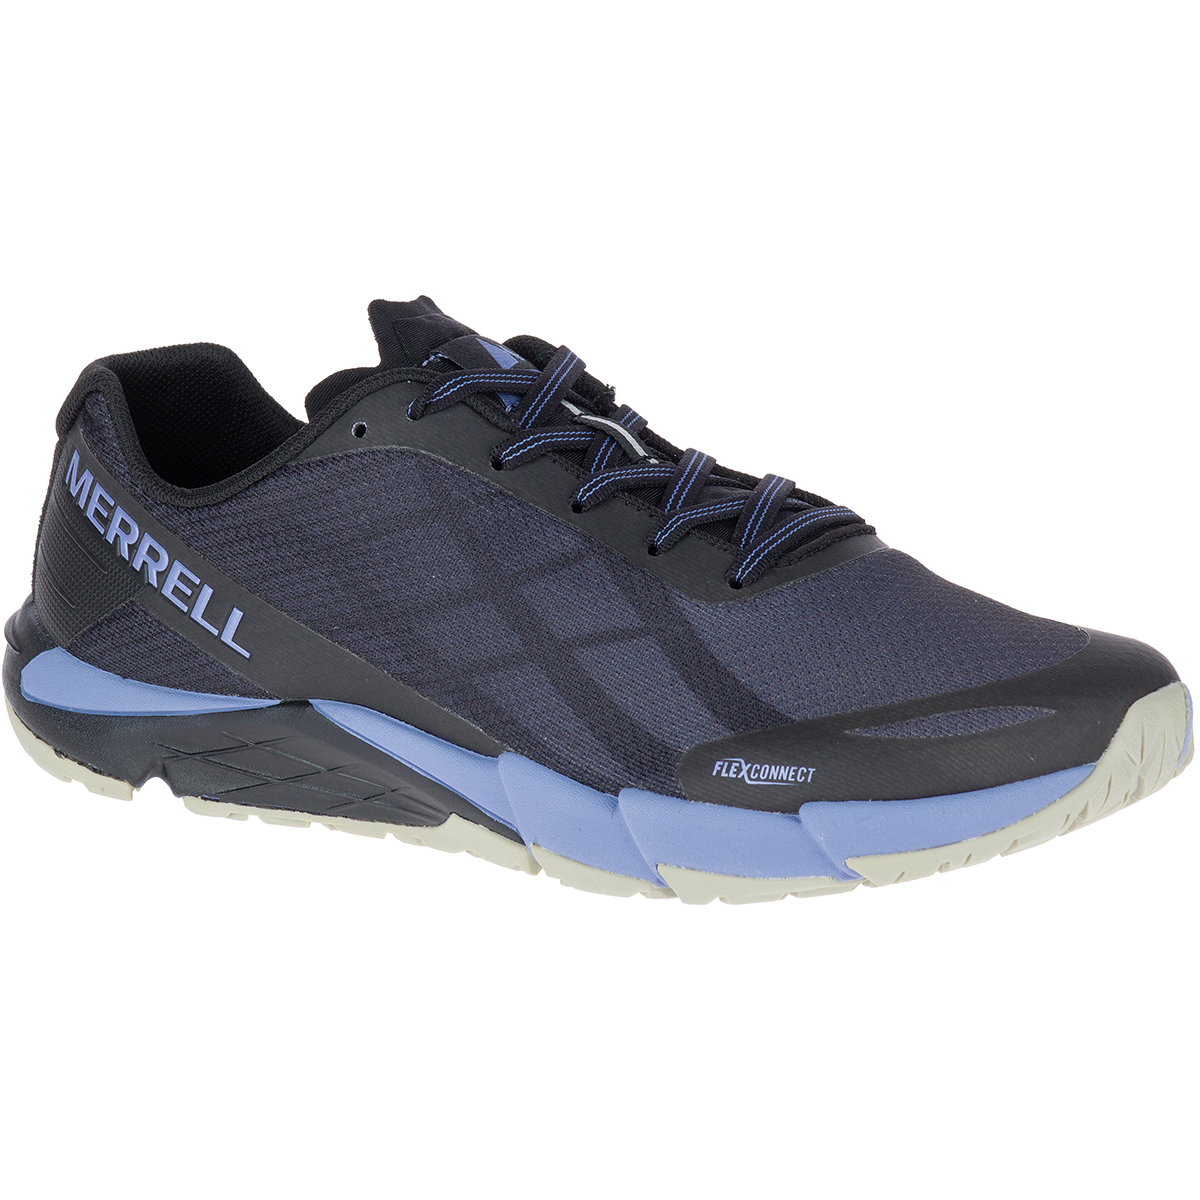 Merrell Women's Bare Access Flex Trail Running Shoes - Black, 11